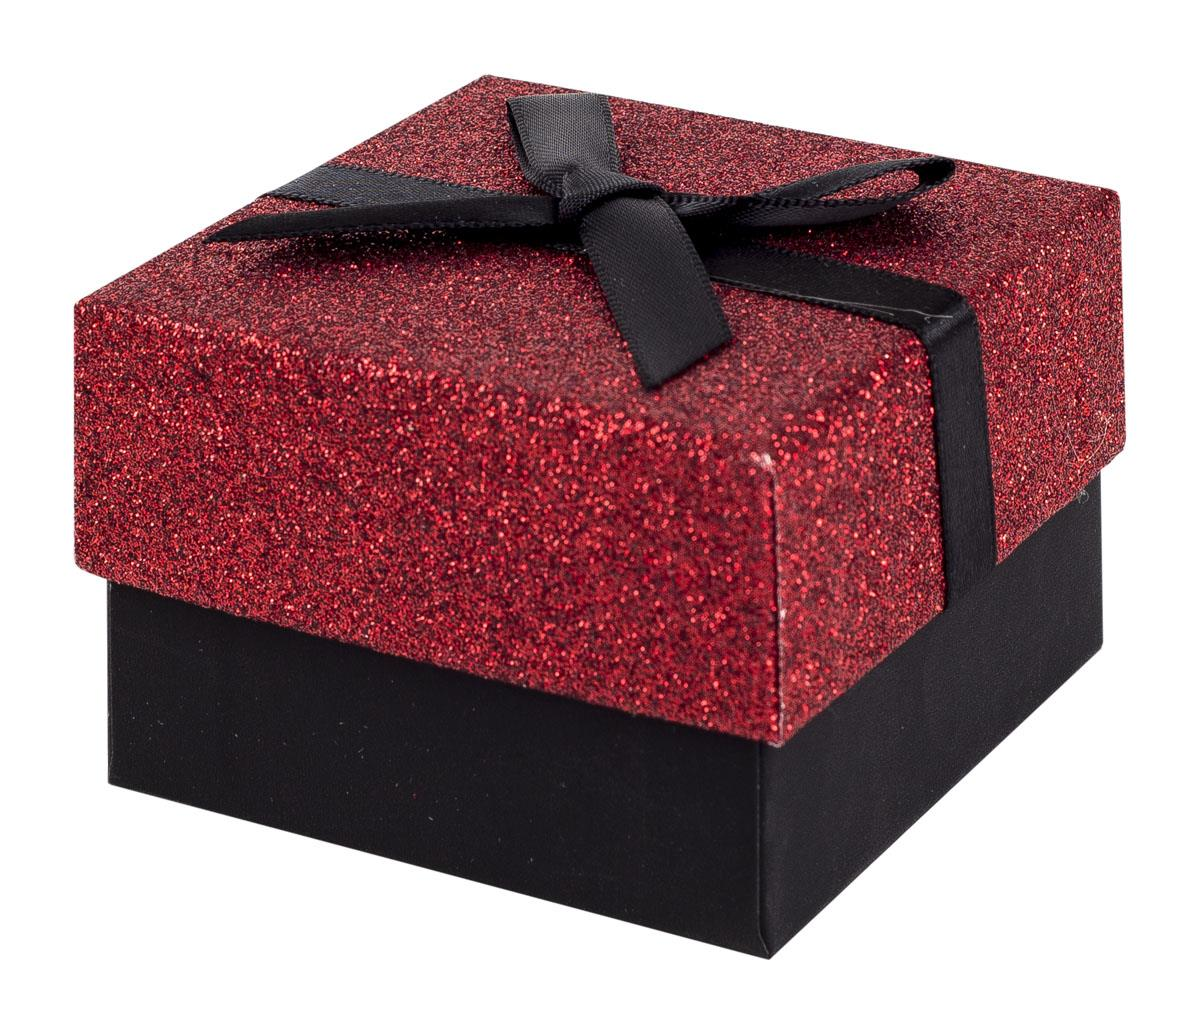 # Christmas Gift Cookie Boxes - Mr Food Cookie Recipes Pictures of gift boxes with ribbon